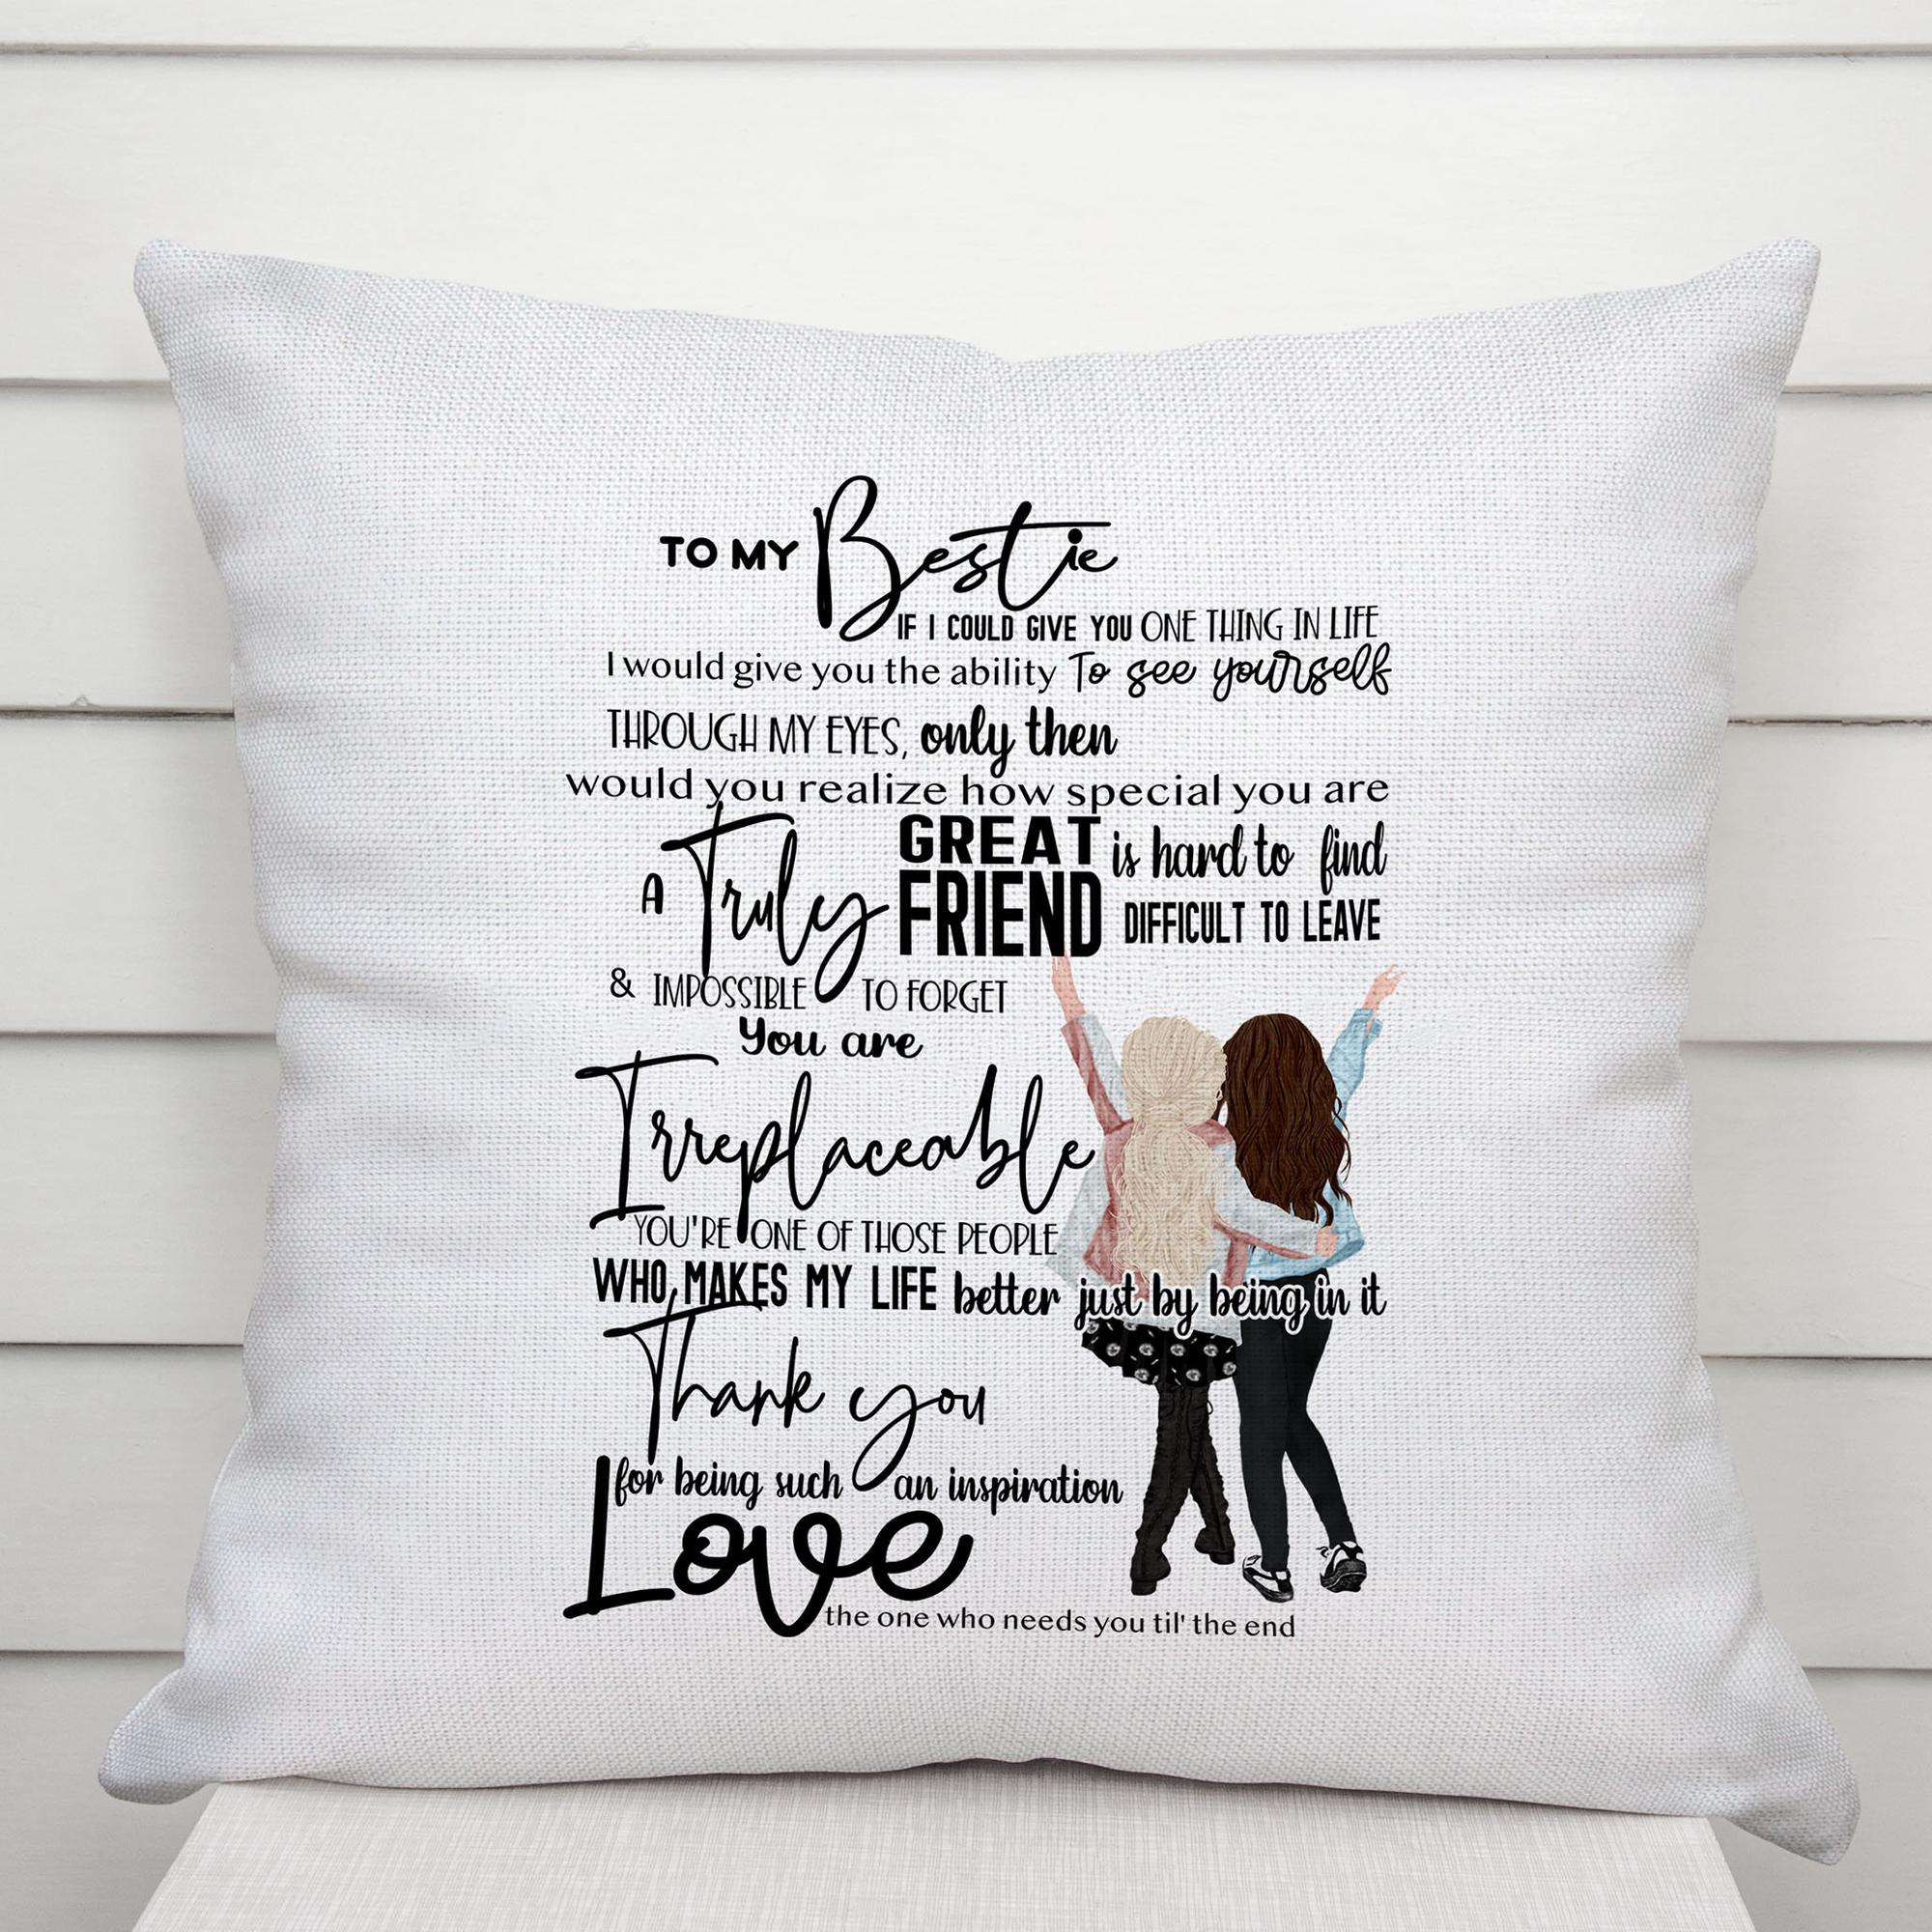 To My Bestie Pillow Case Cushion Cover